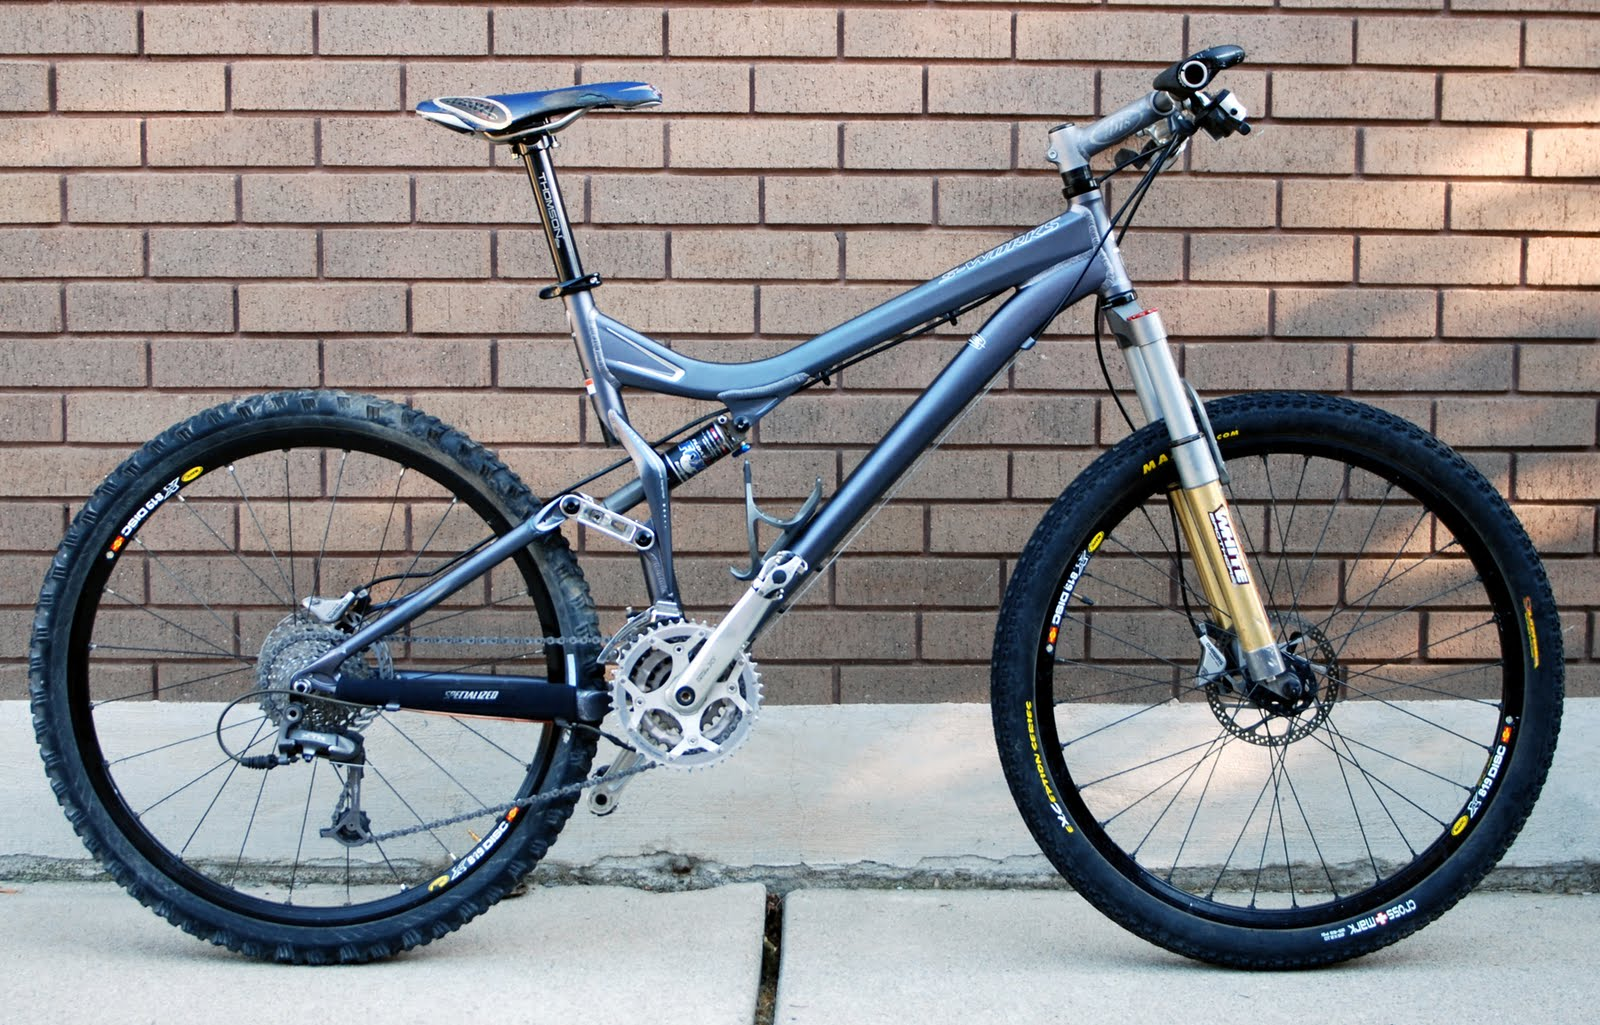 Anex Bicycles Specialized Stumpjumper Fsr Expert 120 - Www